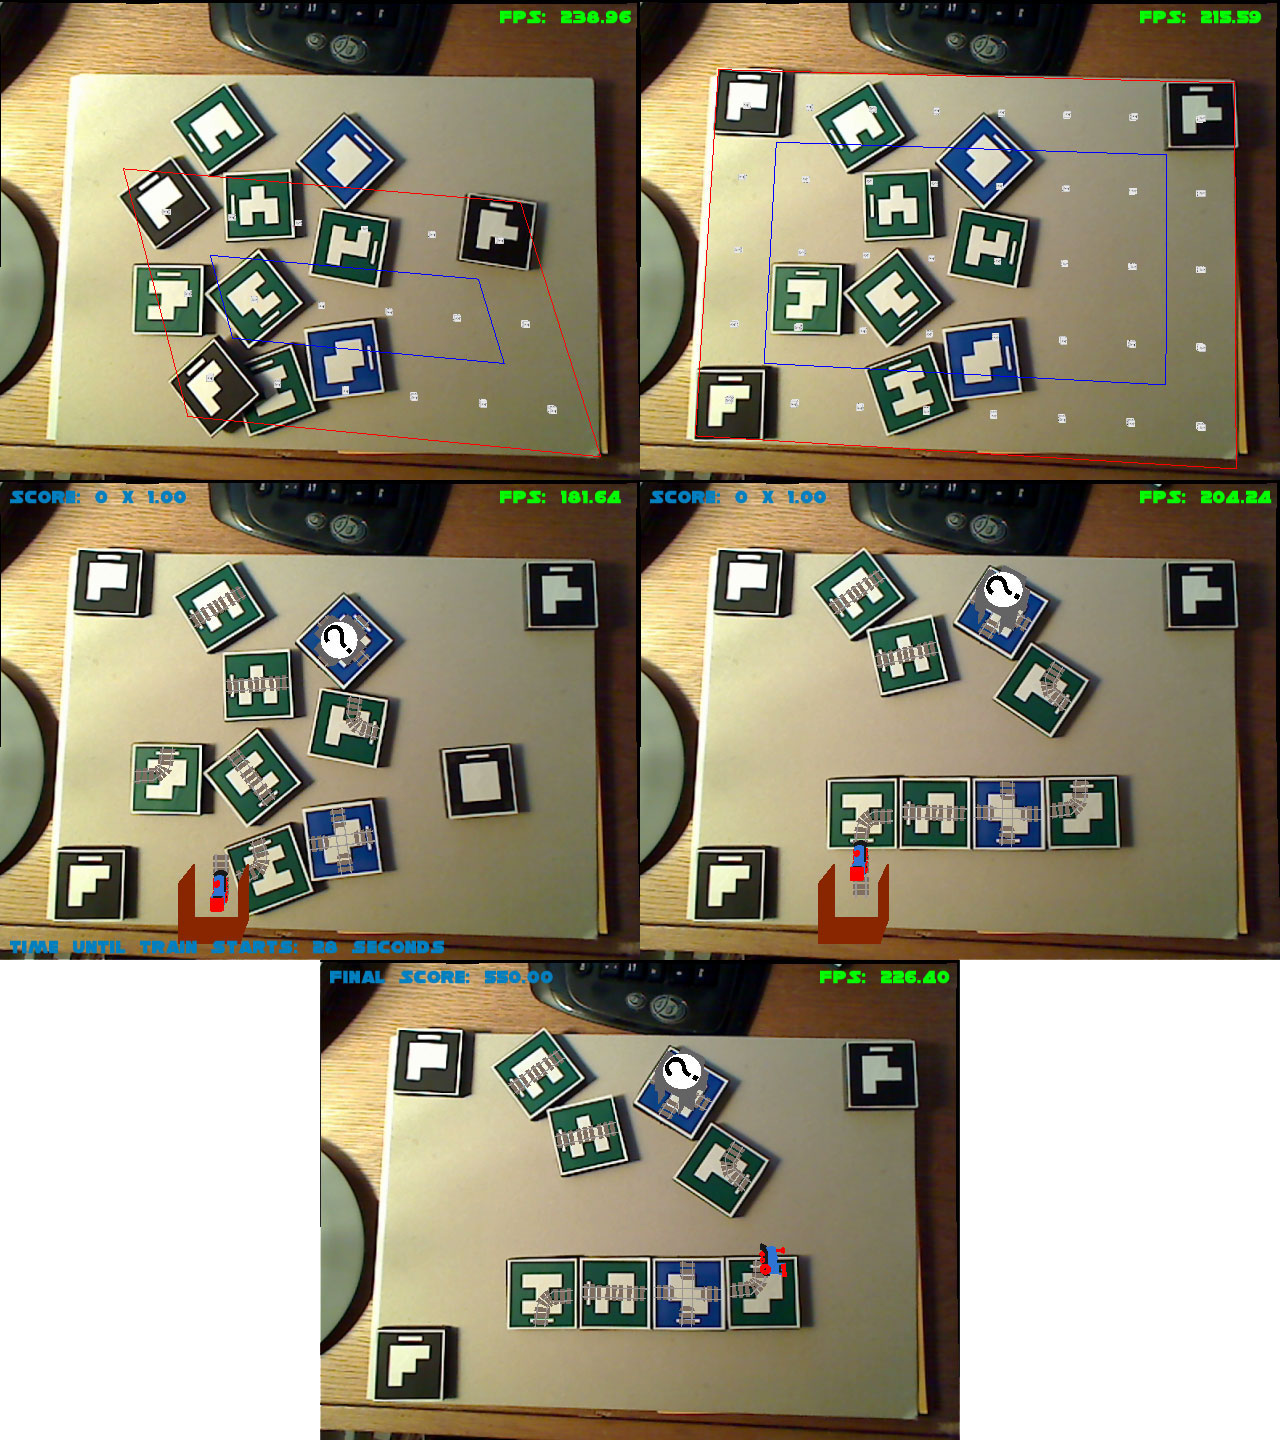 Gameplay screenshots. 1) (Top Left) The game begins with all tags present, yet scattered. 2) (Top Right) Three tags help define the play area. 3) The train departure area spawns giving the player a while to orient track tags. 4) The player constructs a simple track path. 5) If the train reaches the end of the track, the game is over.